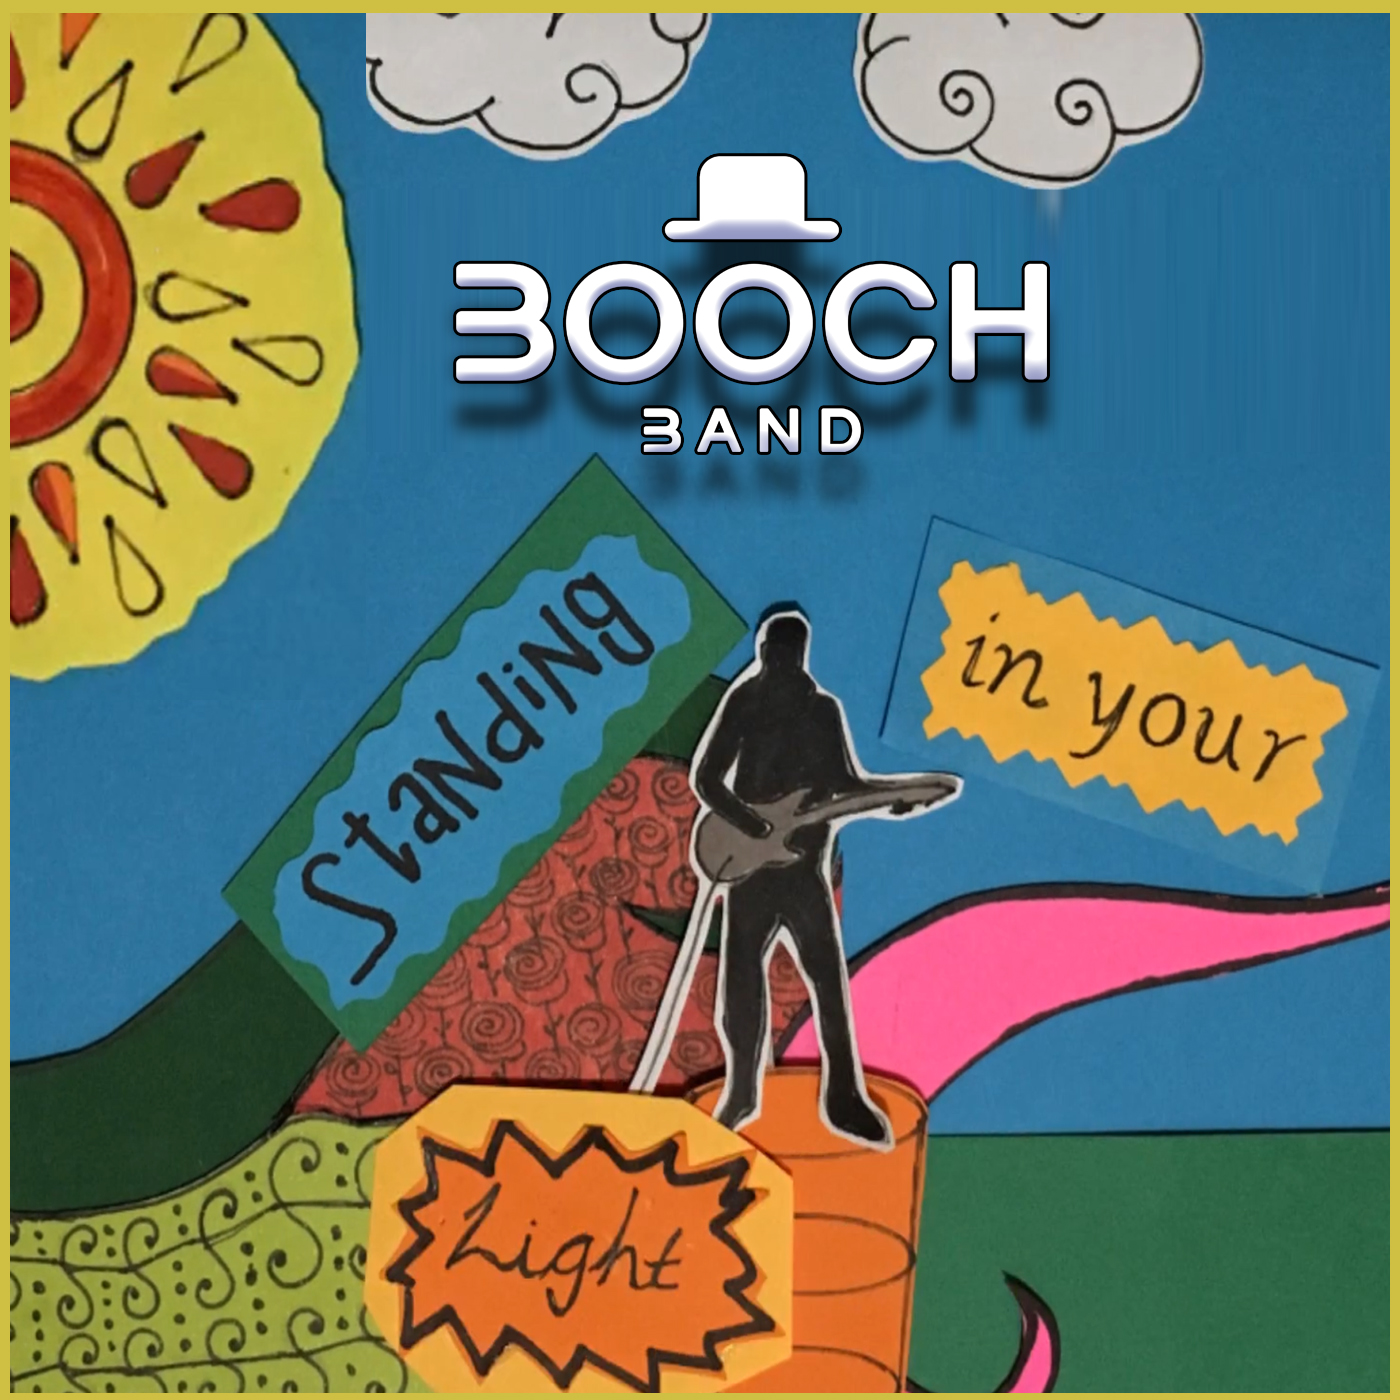 Booch Band Synch for Seinfeld's Comedians Drops Today on Netflix Series Ahead of New August Single